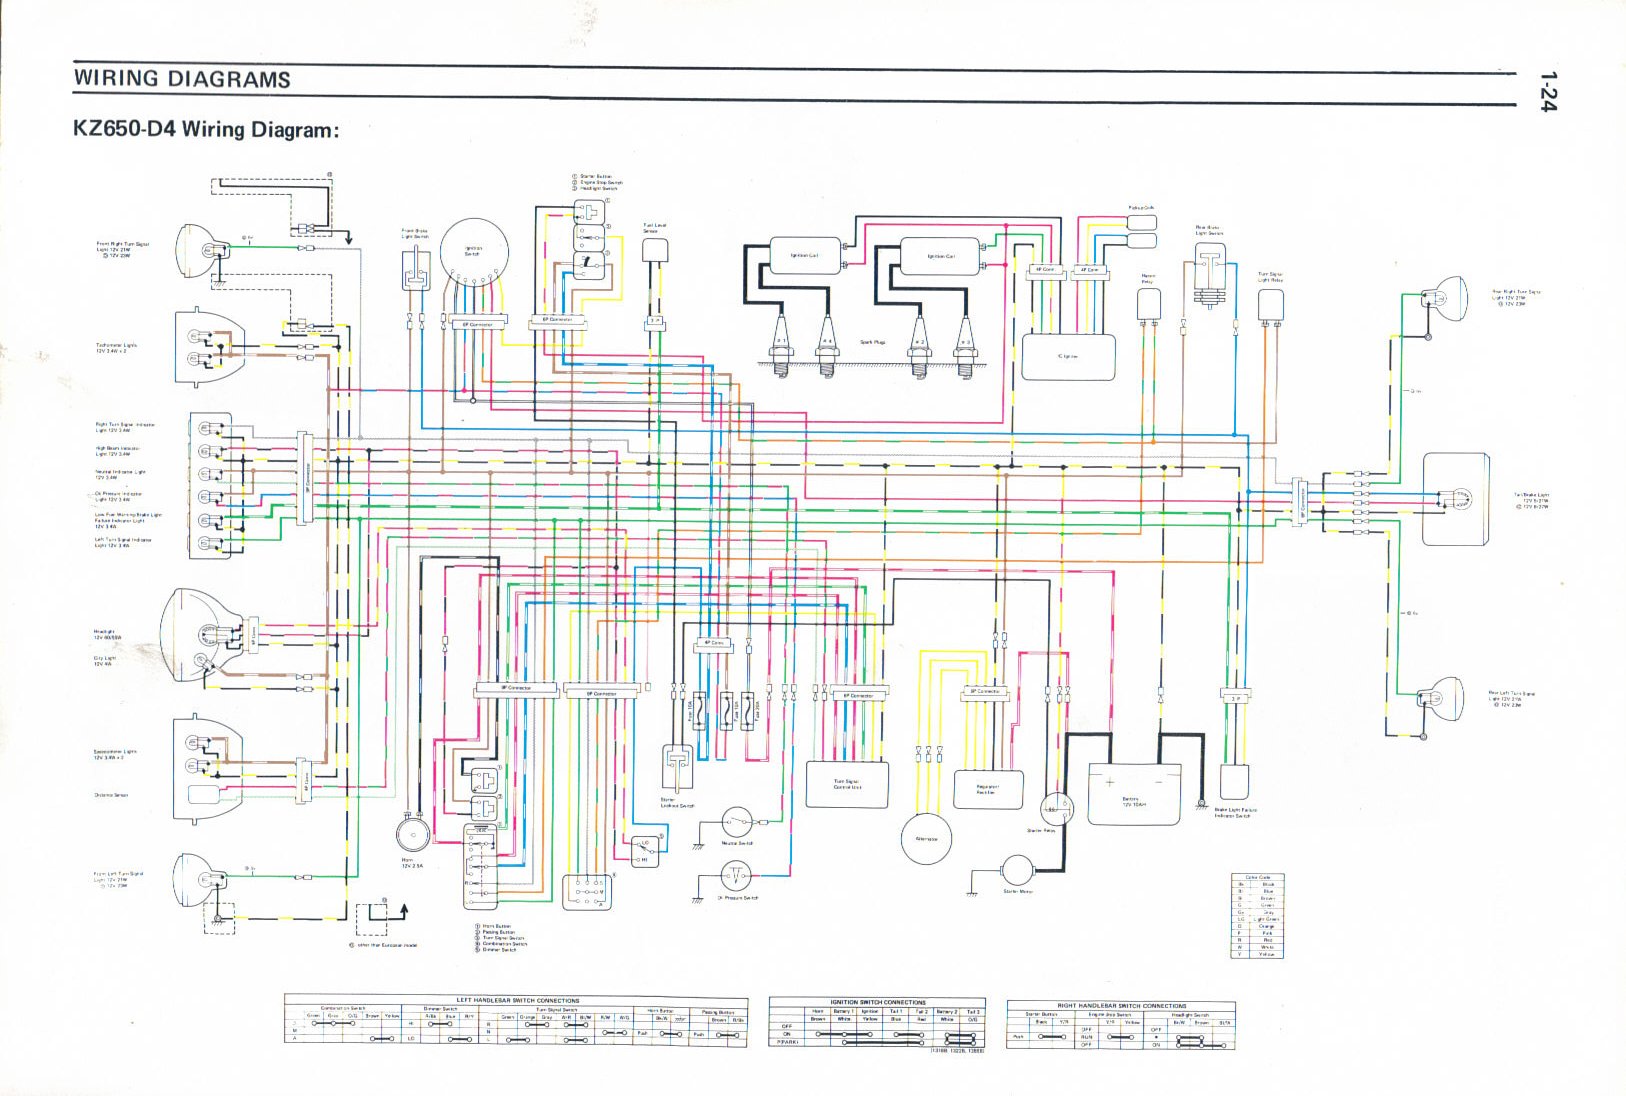 KZ650 D4 kawasaki z750 wiring diagram kawasaki wiring diagrams instruction kawasaki fb460v wiring diagram at bayanpartner.co